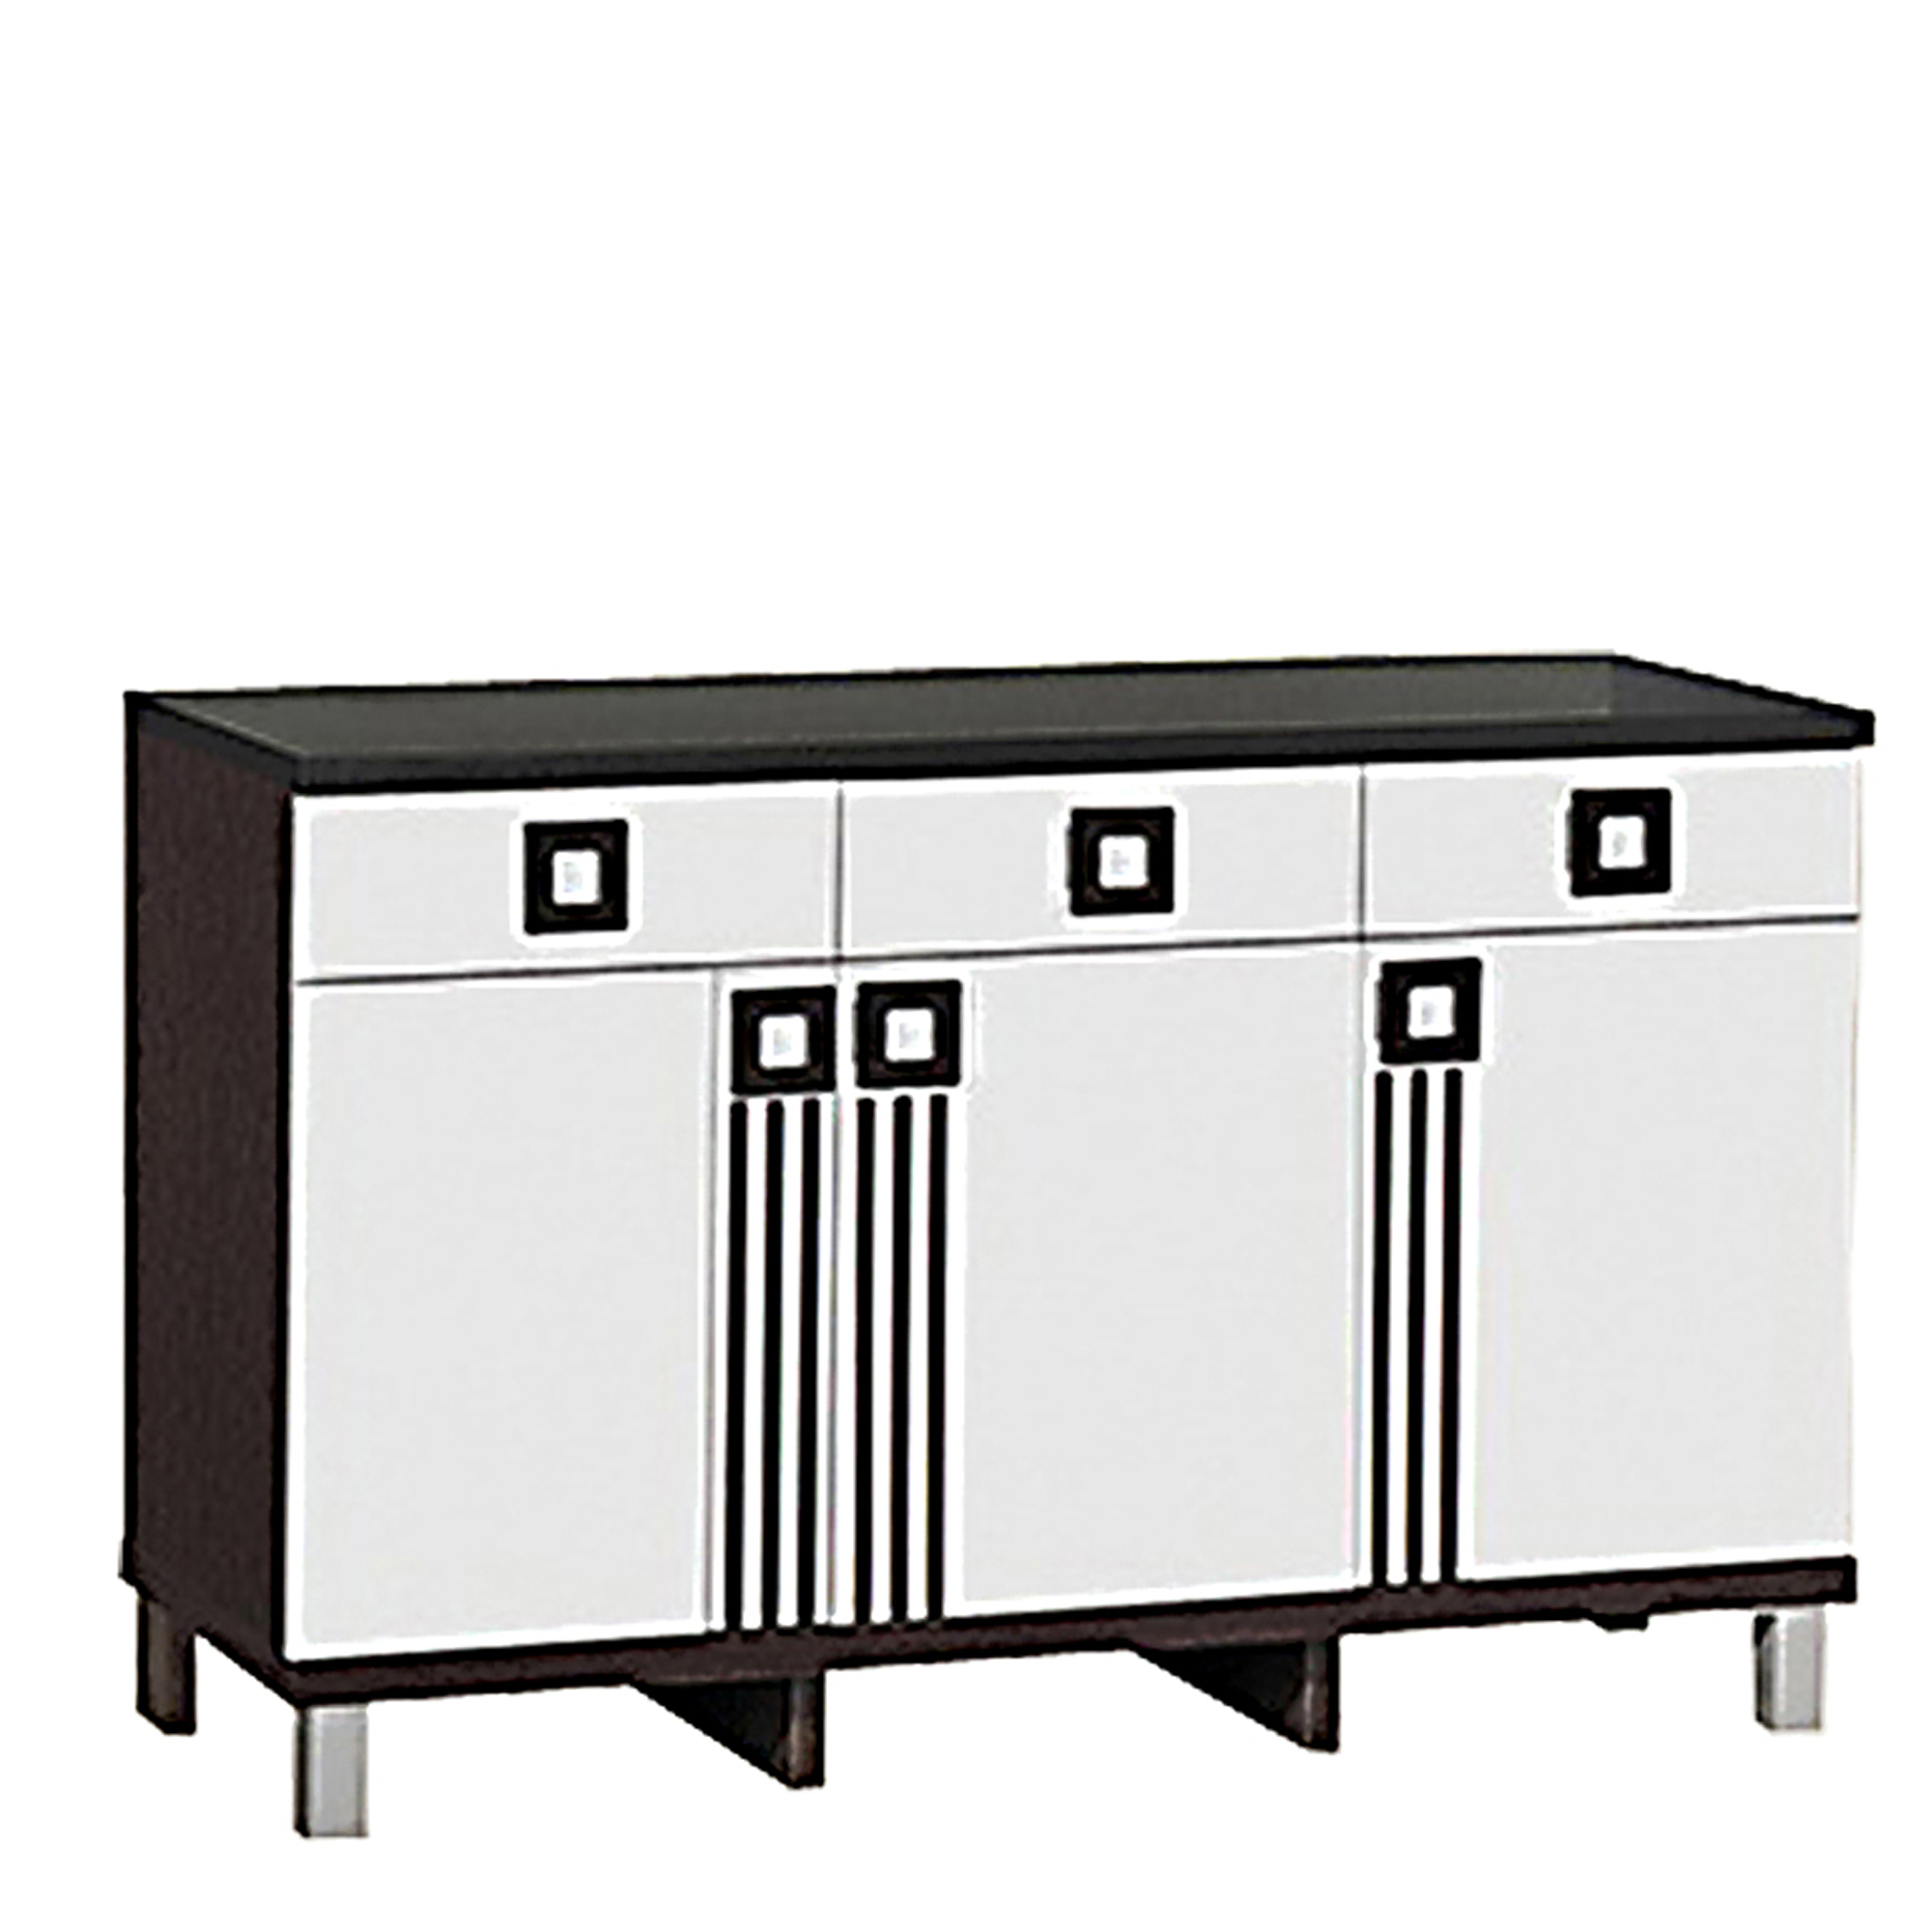 Naturalis Furniture KSB 2553